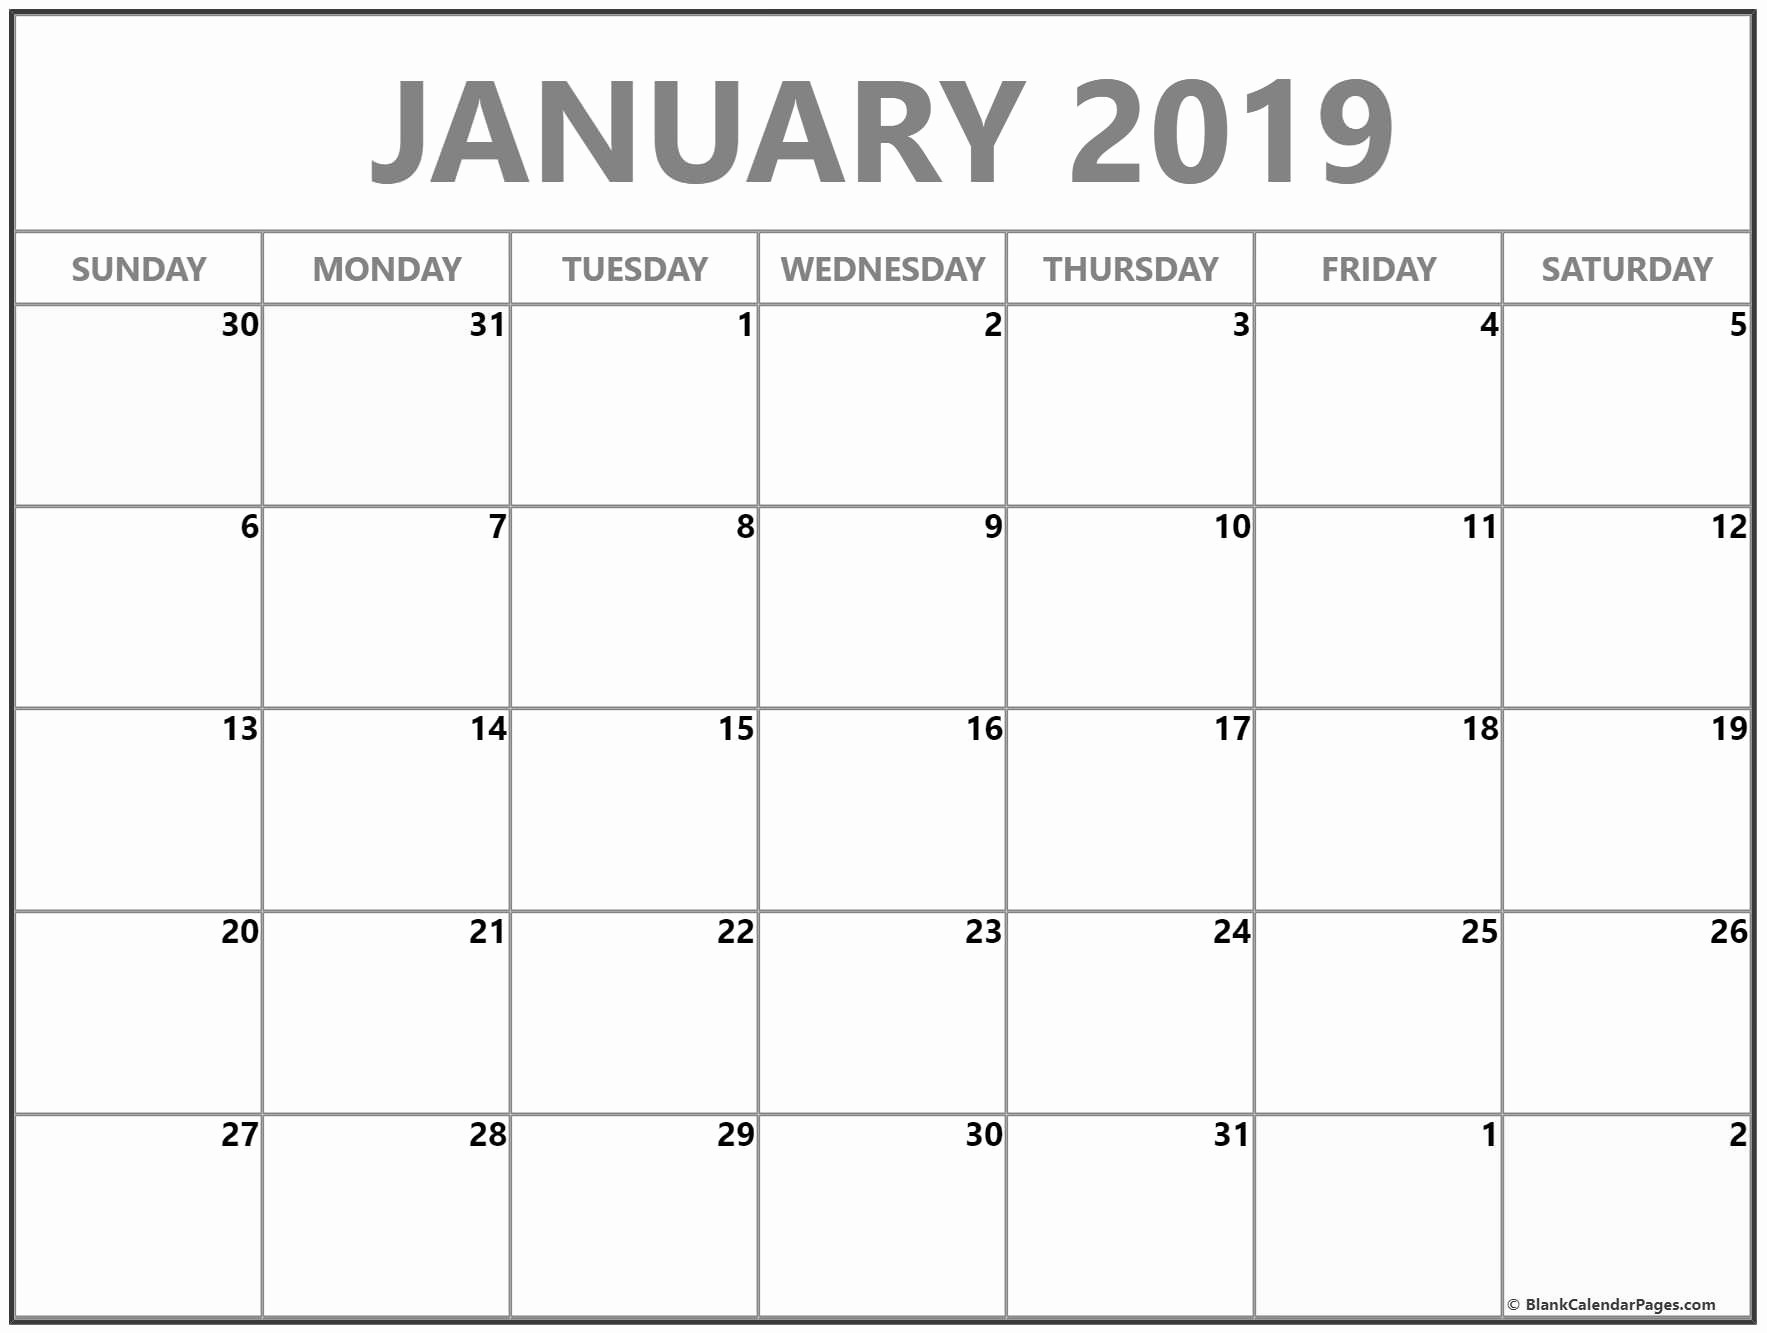 Blank January 2019 Calendar Template Fresh January 2019 Blank Calendar Templates